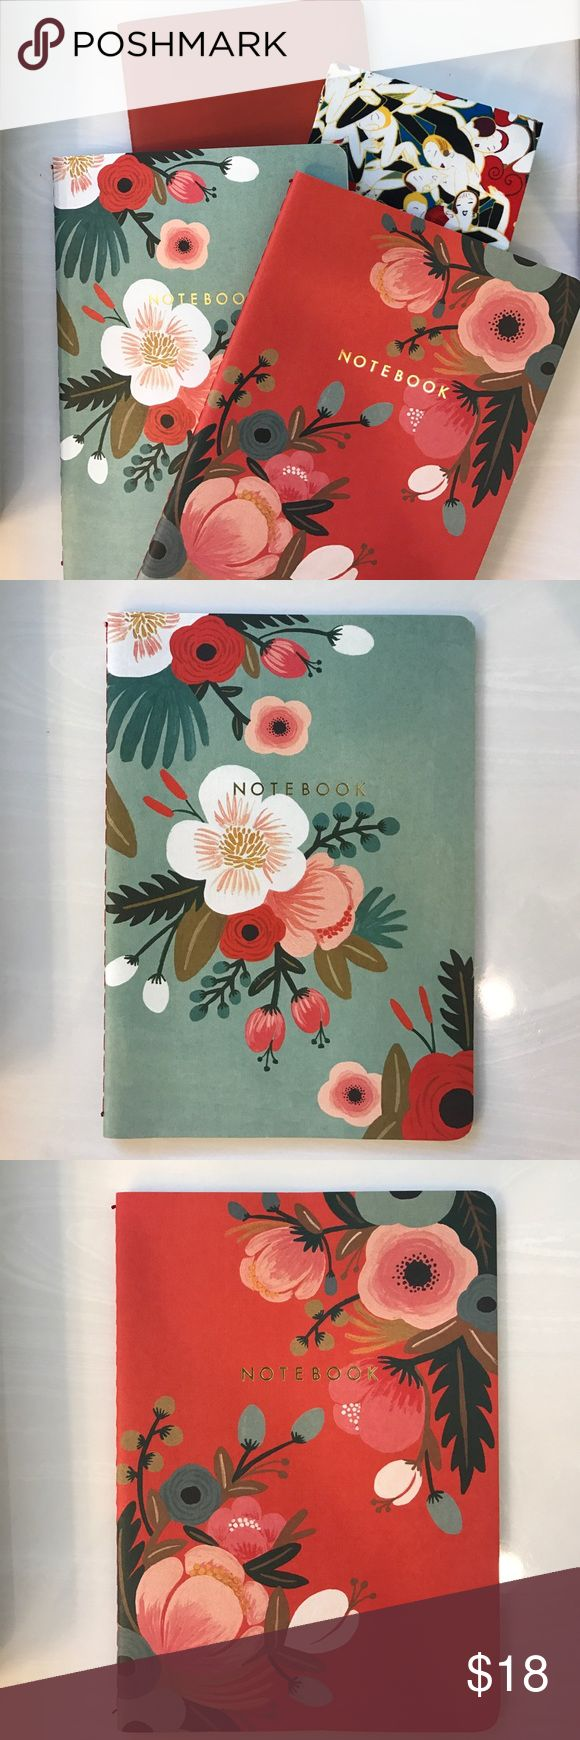 🌸🌺NOTEBOOKS🌺🌸 SET OF 4 NOTEBOOKS. FLOWER AND RED NOTEBOOKS ARE LINED • SMALLER ONE WITH COLORFUL PRINT HAS NO LINES JUST FRAMED BORDER AROUND PAPER ALSO THICKER PAPER • SUPER CUTE • GREAT FOR CARRYING IN PURSE FOR JOURNALING • FREE GIFT WITH PURCHASE 🌺🌸  *NO TRADE* Carolina Herrera Other